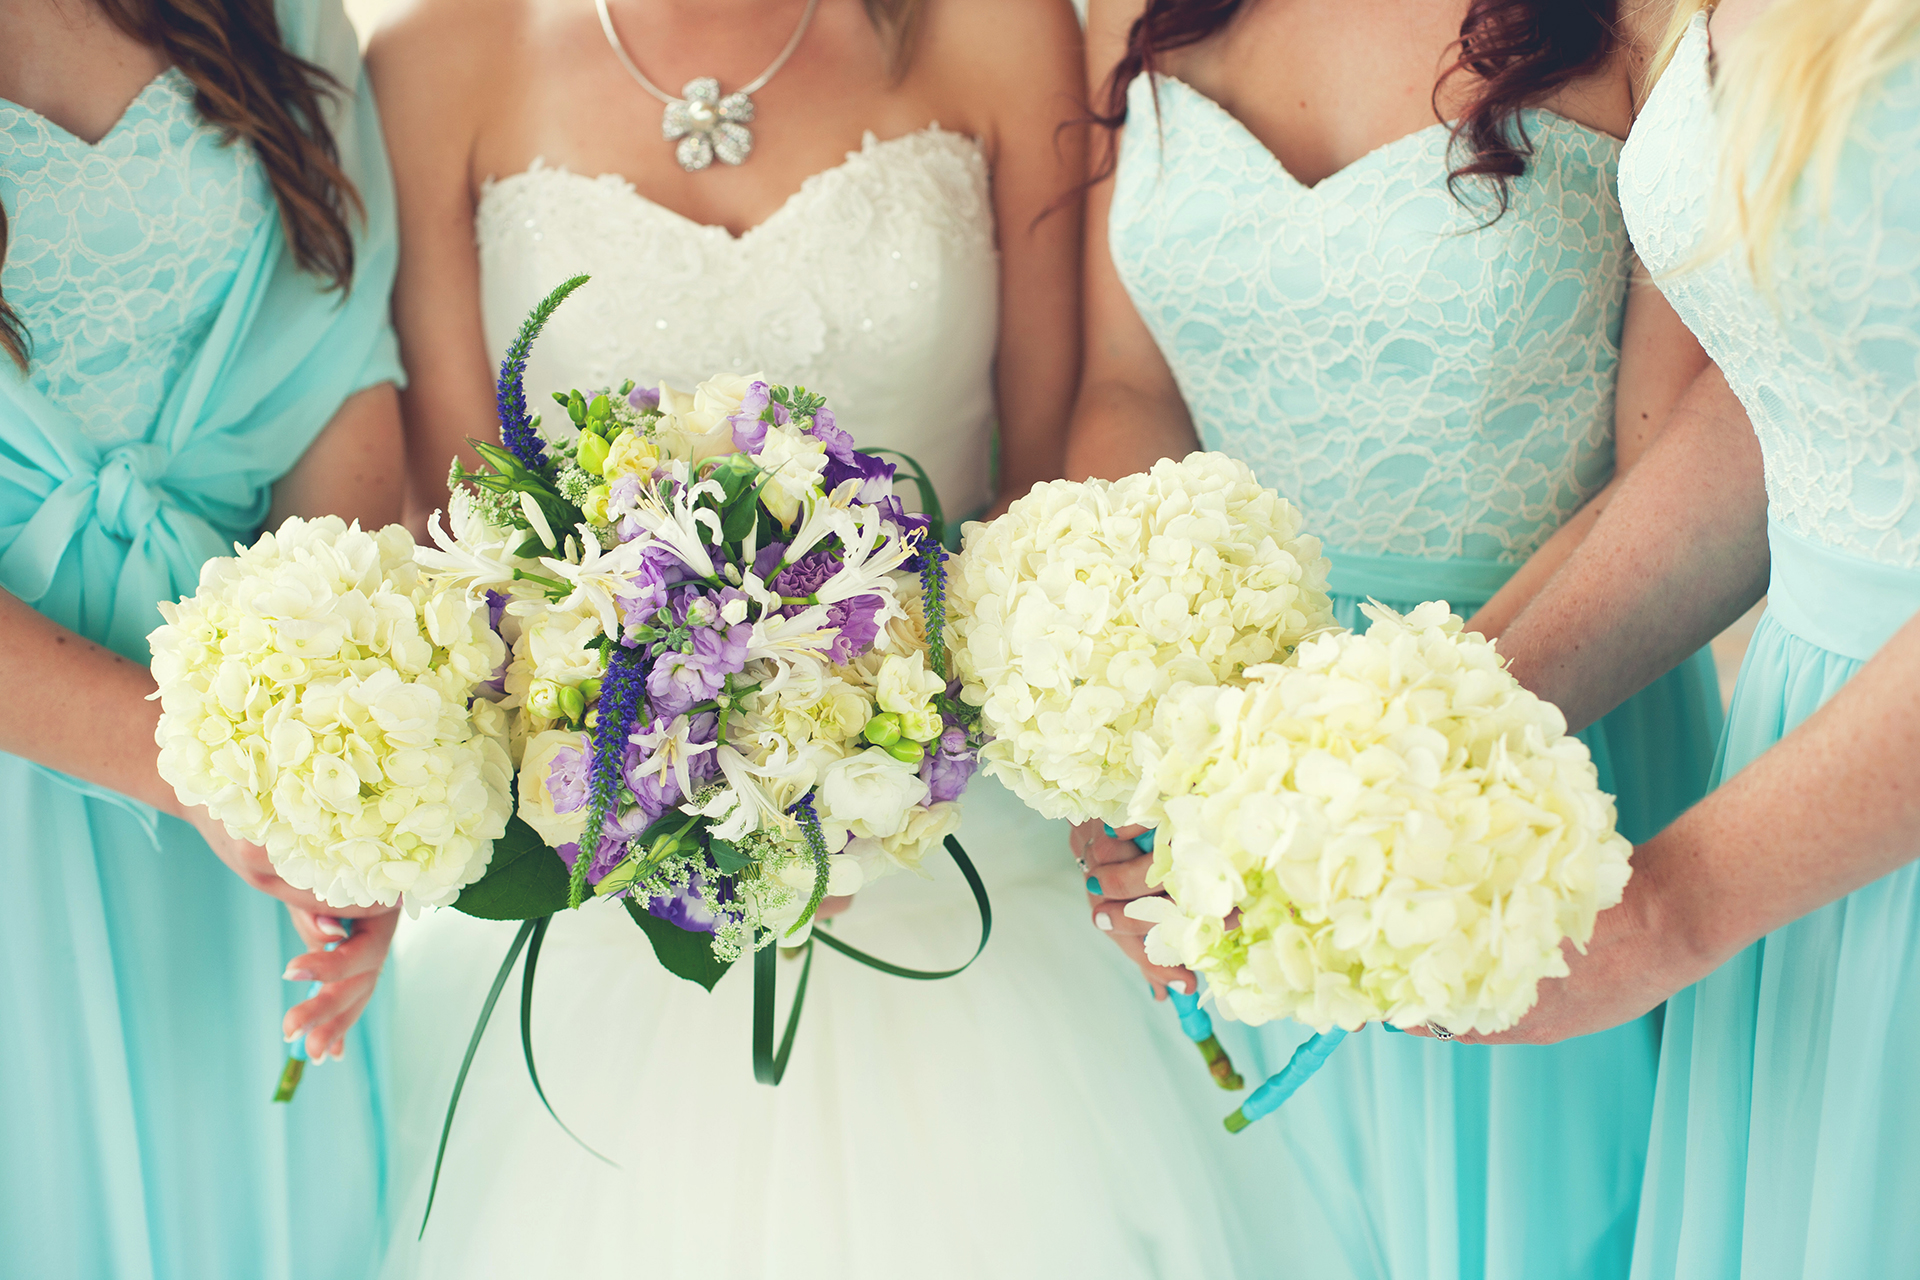 79bc6ff4ce53447da6bf92f76bc8cd43 - 31 Smart and Easy Ways To Save Money On Your Wedding Without Cutting the Guest List